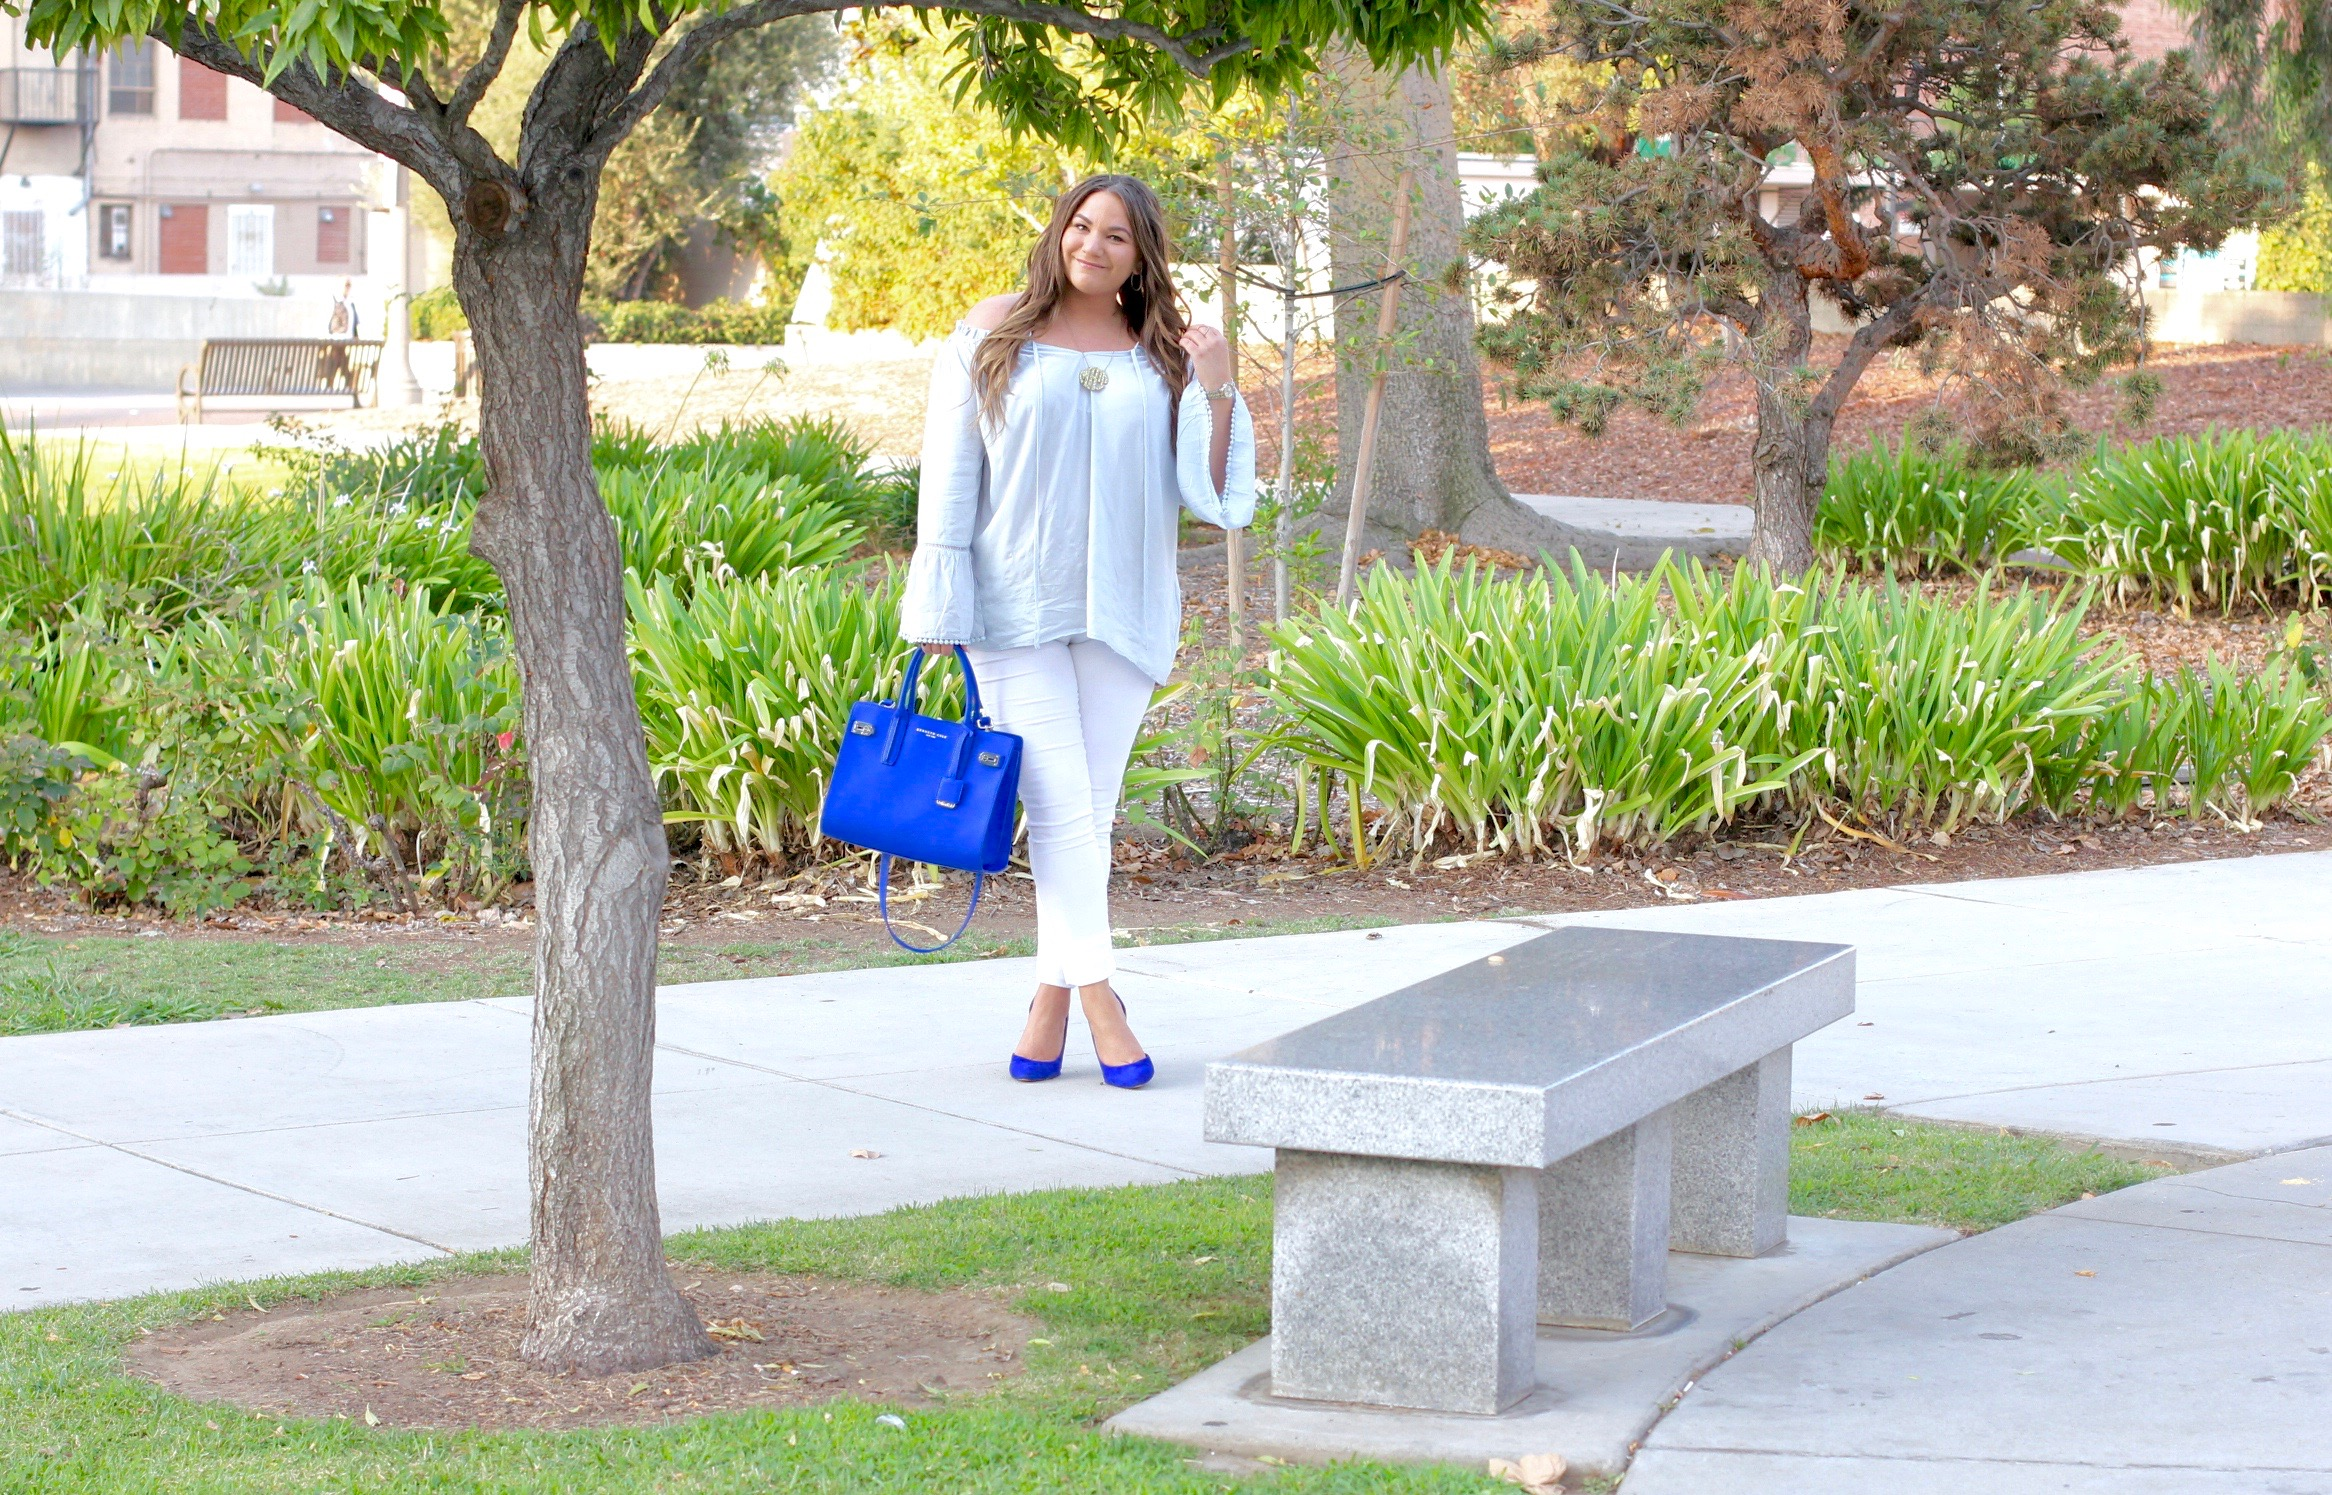 missyonmadison, baublebar monogram necklace, acrylic monogram necklace, white skinny jeans, old navy, old navy white skinny jeans, make me chic, make me chic off the shoulder bell top, cold shoulder top, off the shoulder blouse, la blogger, blogger, style blogger, la style, fall style, how to wear white jeans, how to style white after labor day, cobalt blue satchel, cobalt blue bag, blue suede shoes, blue pumps, cobalt blue pumps, cobalt blue suede pumps, hair goals, brunette hair, fashion blogger, fall trends, street style,